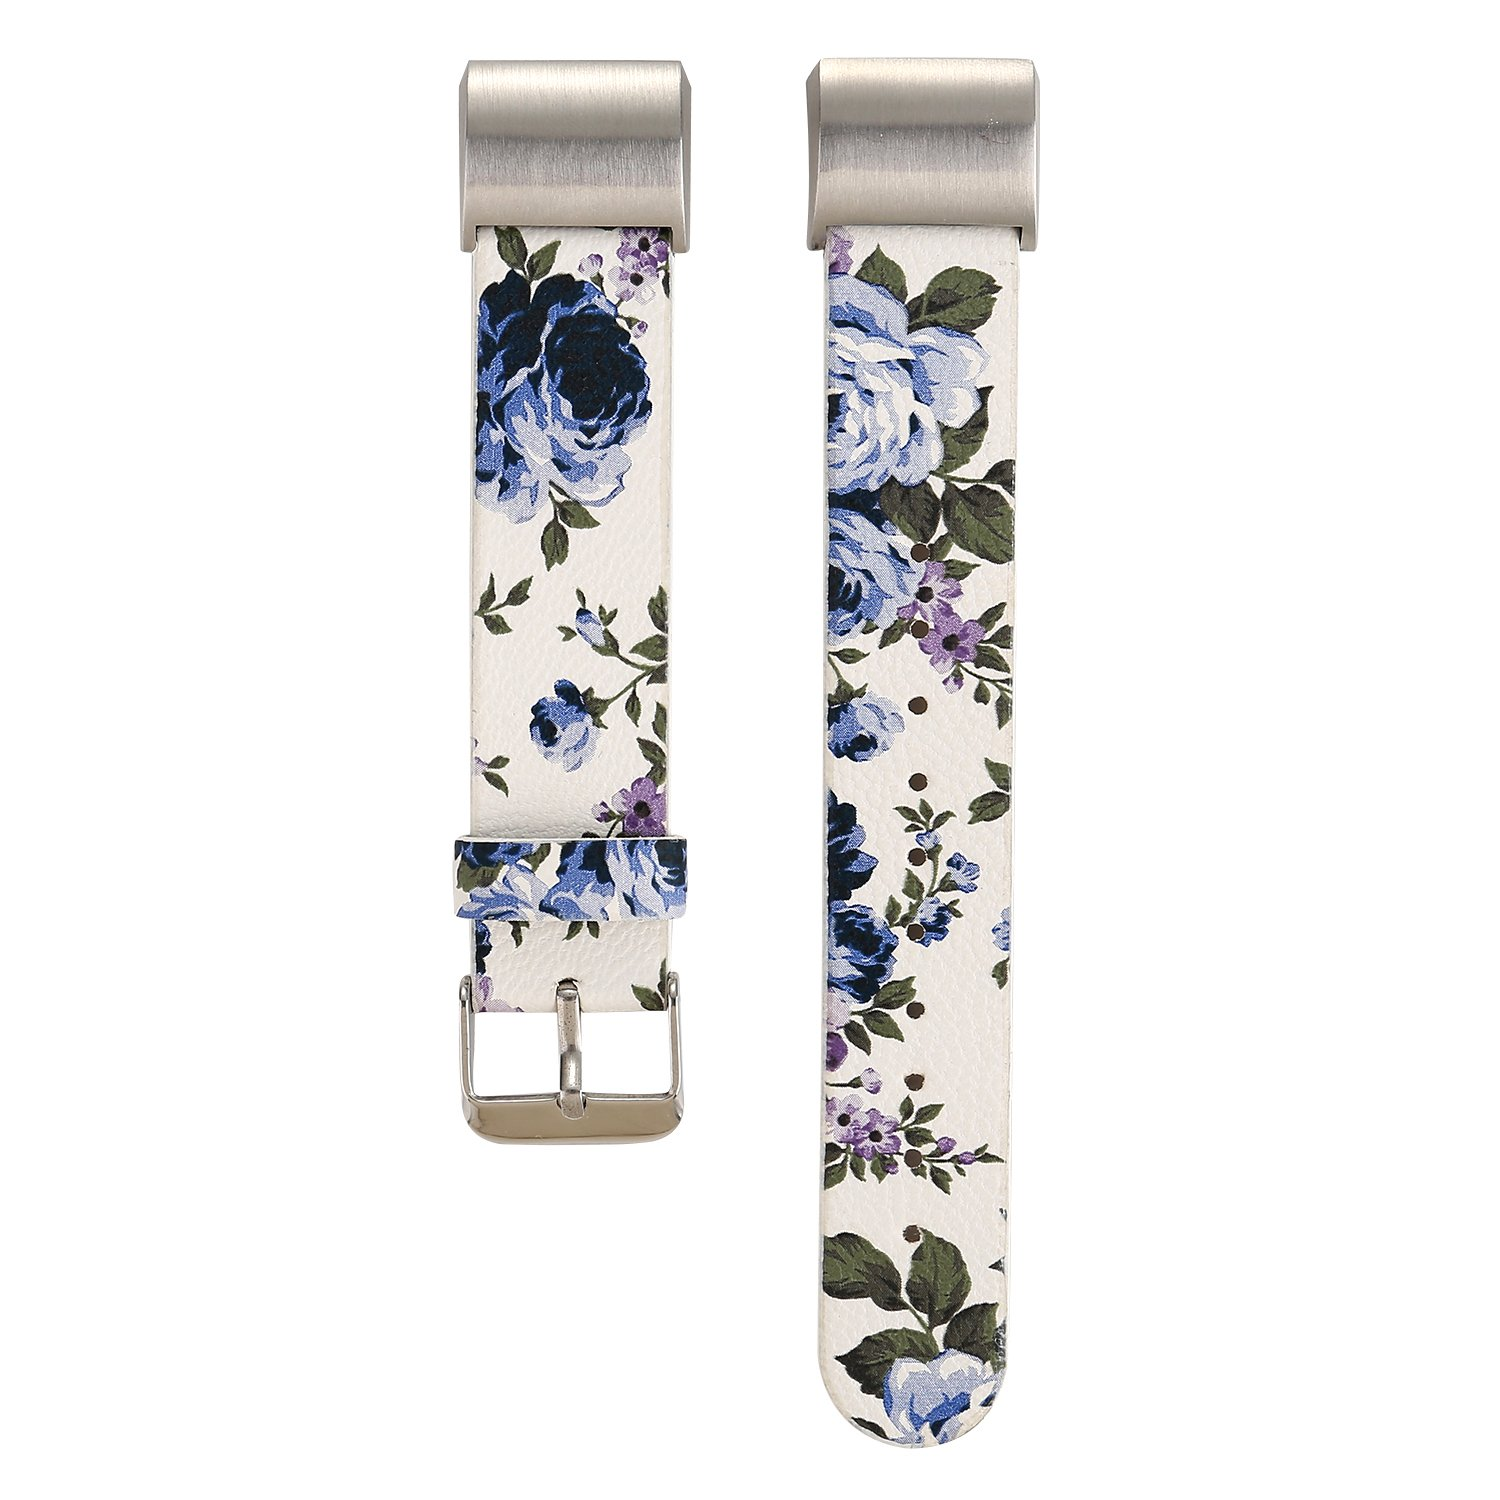 MeShow TCSHOW Compatible for Fitbit Charger 2 Band, Soft PU Leather Pastoral/Rural Floral Style Replacement Strap Wrist Band Compitable for Fitbit Charger 2